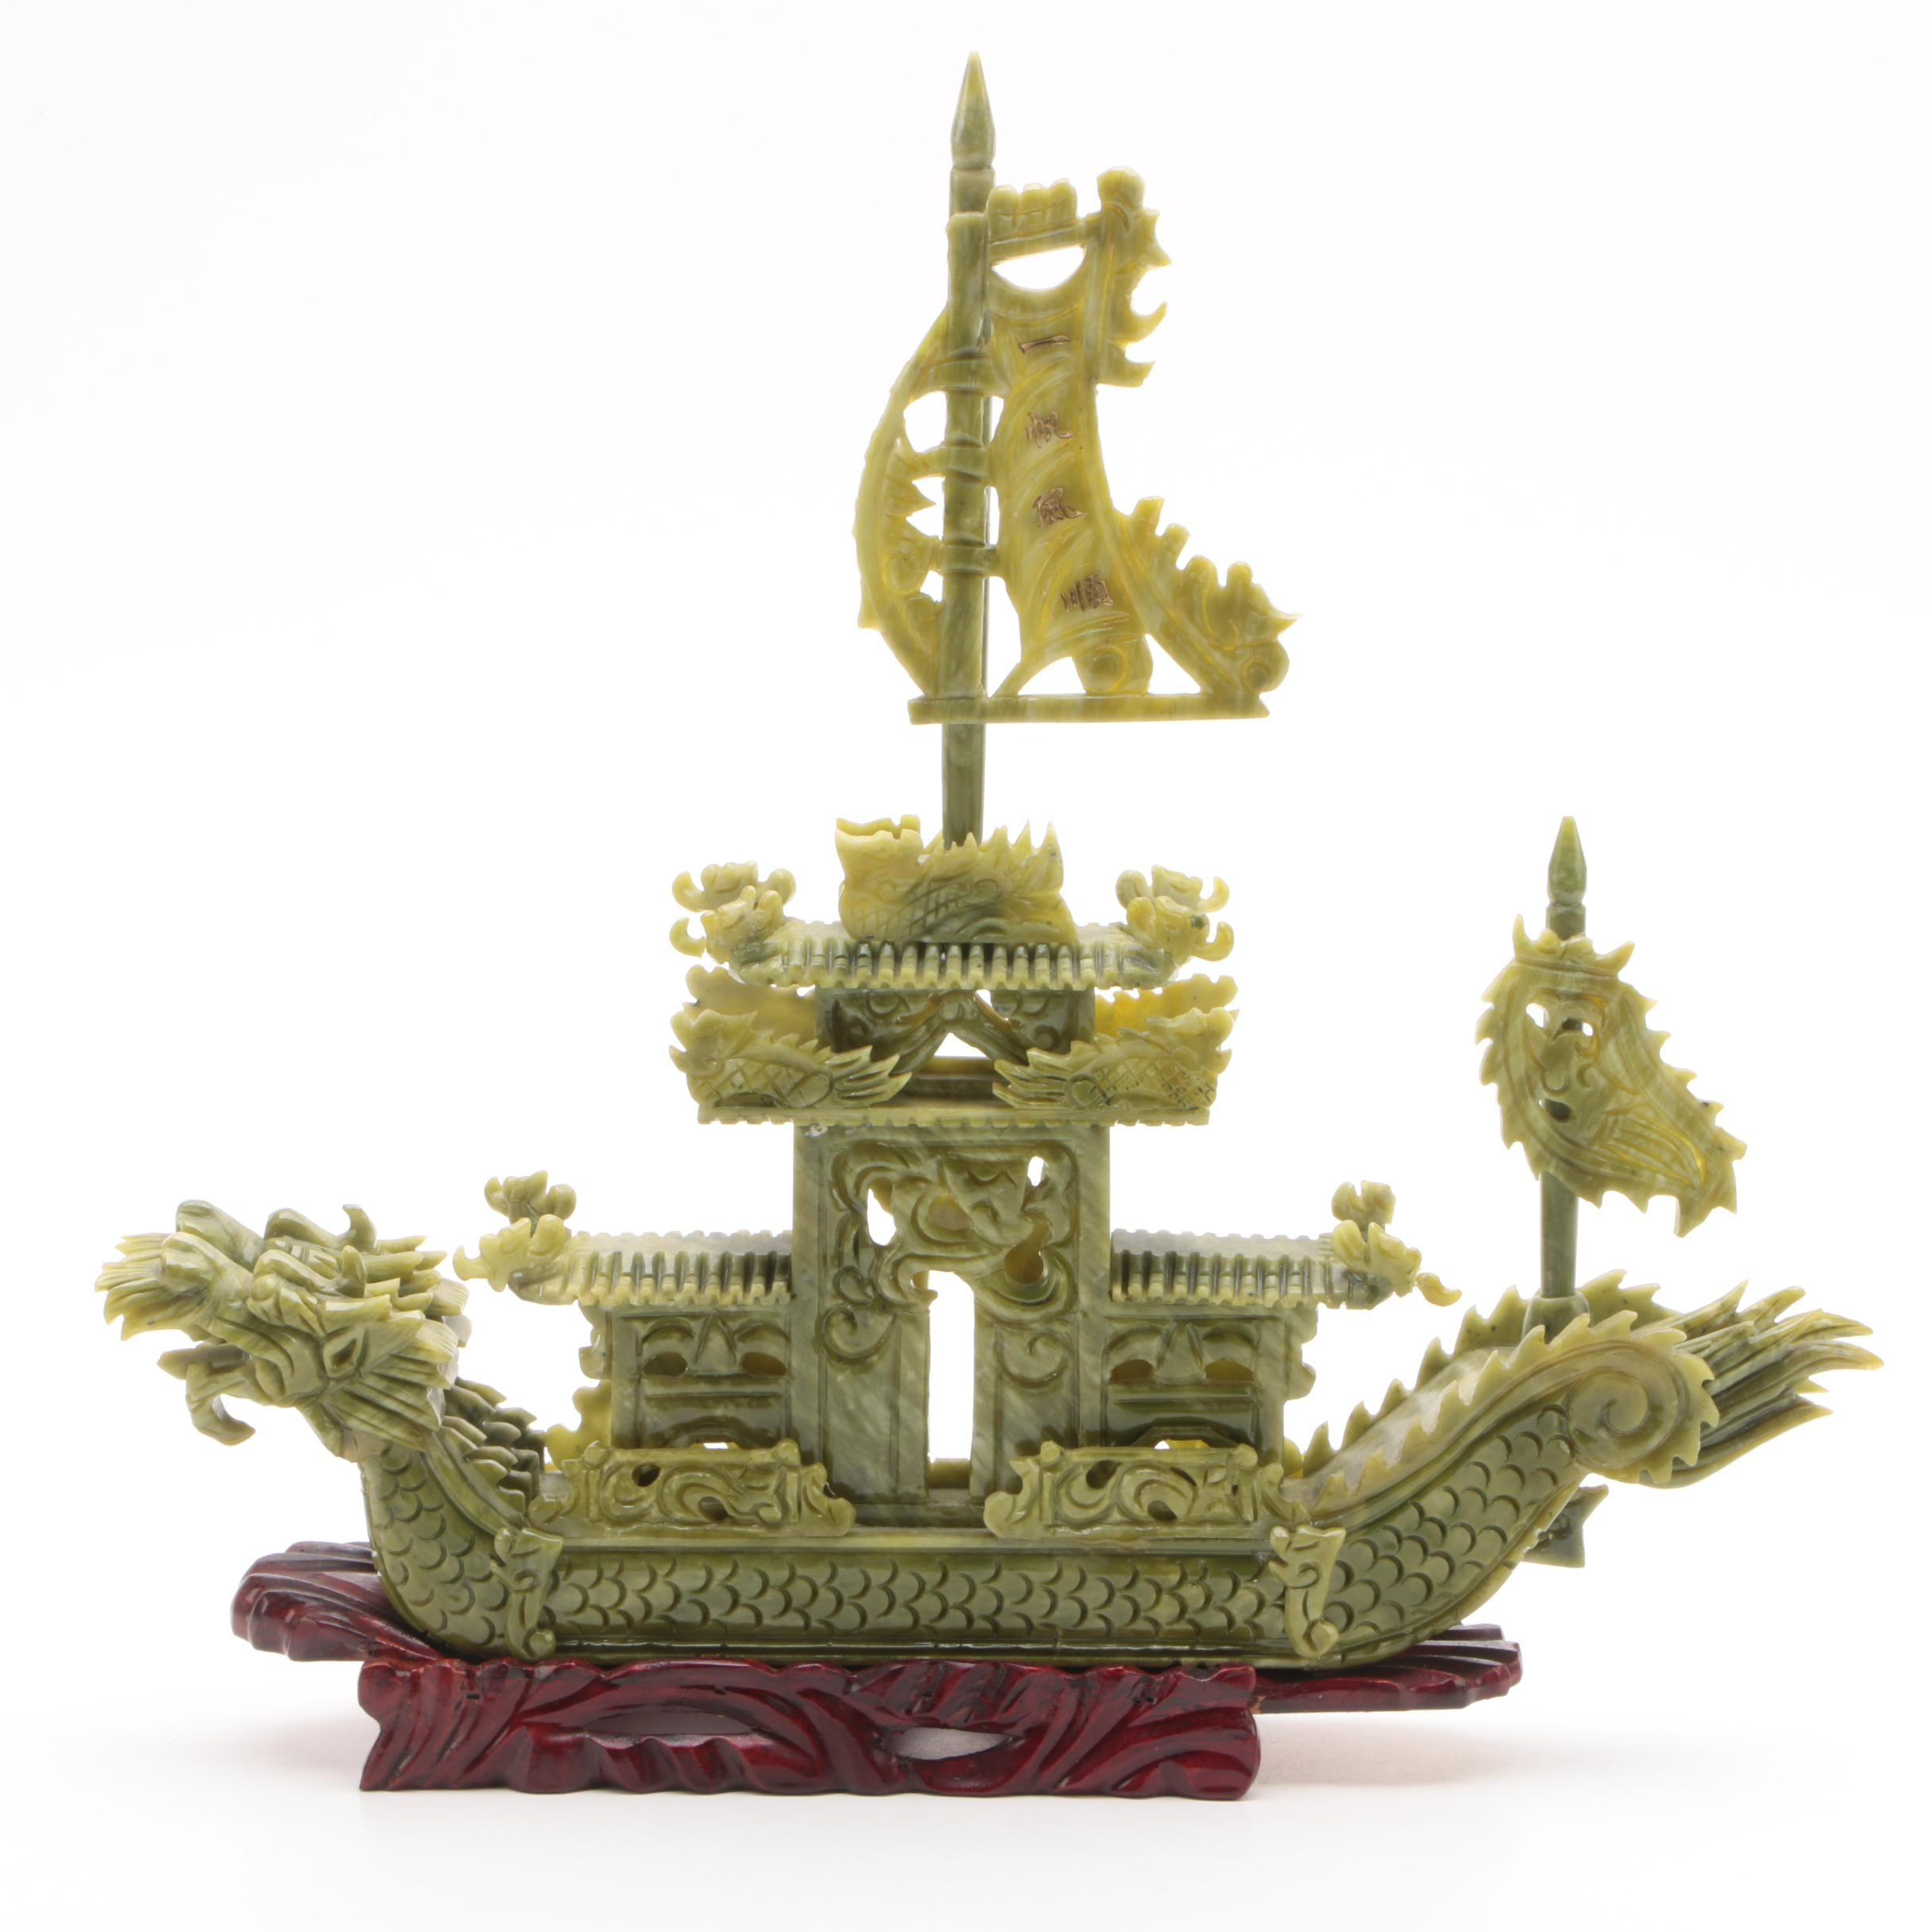 Chinese Carved Serpentine Dragon Motif Ship